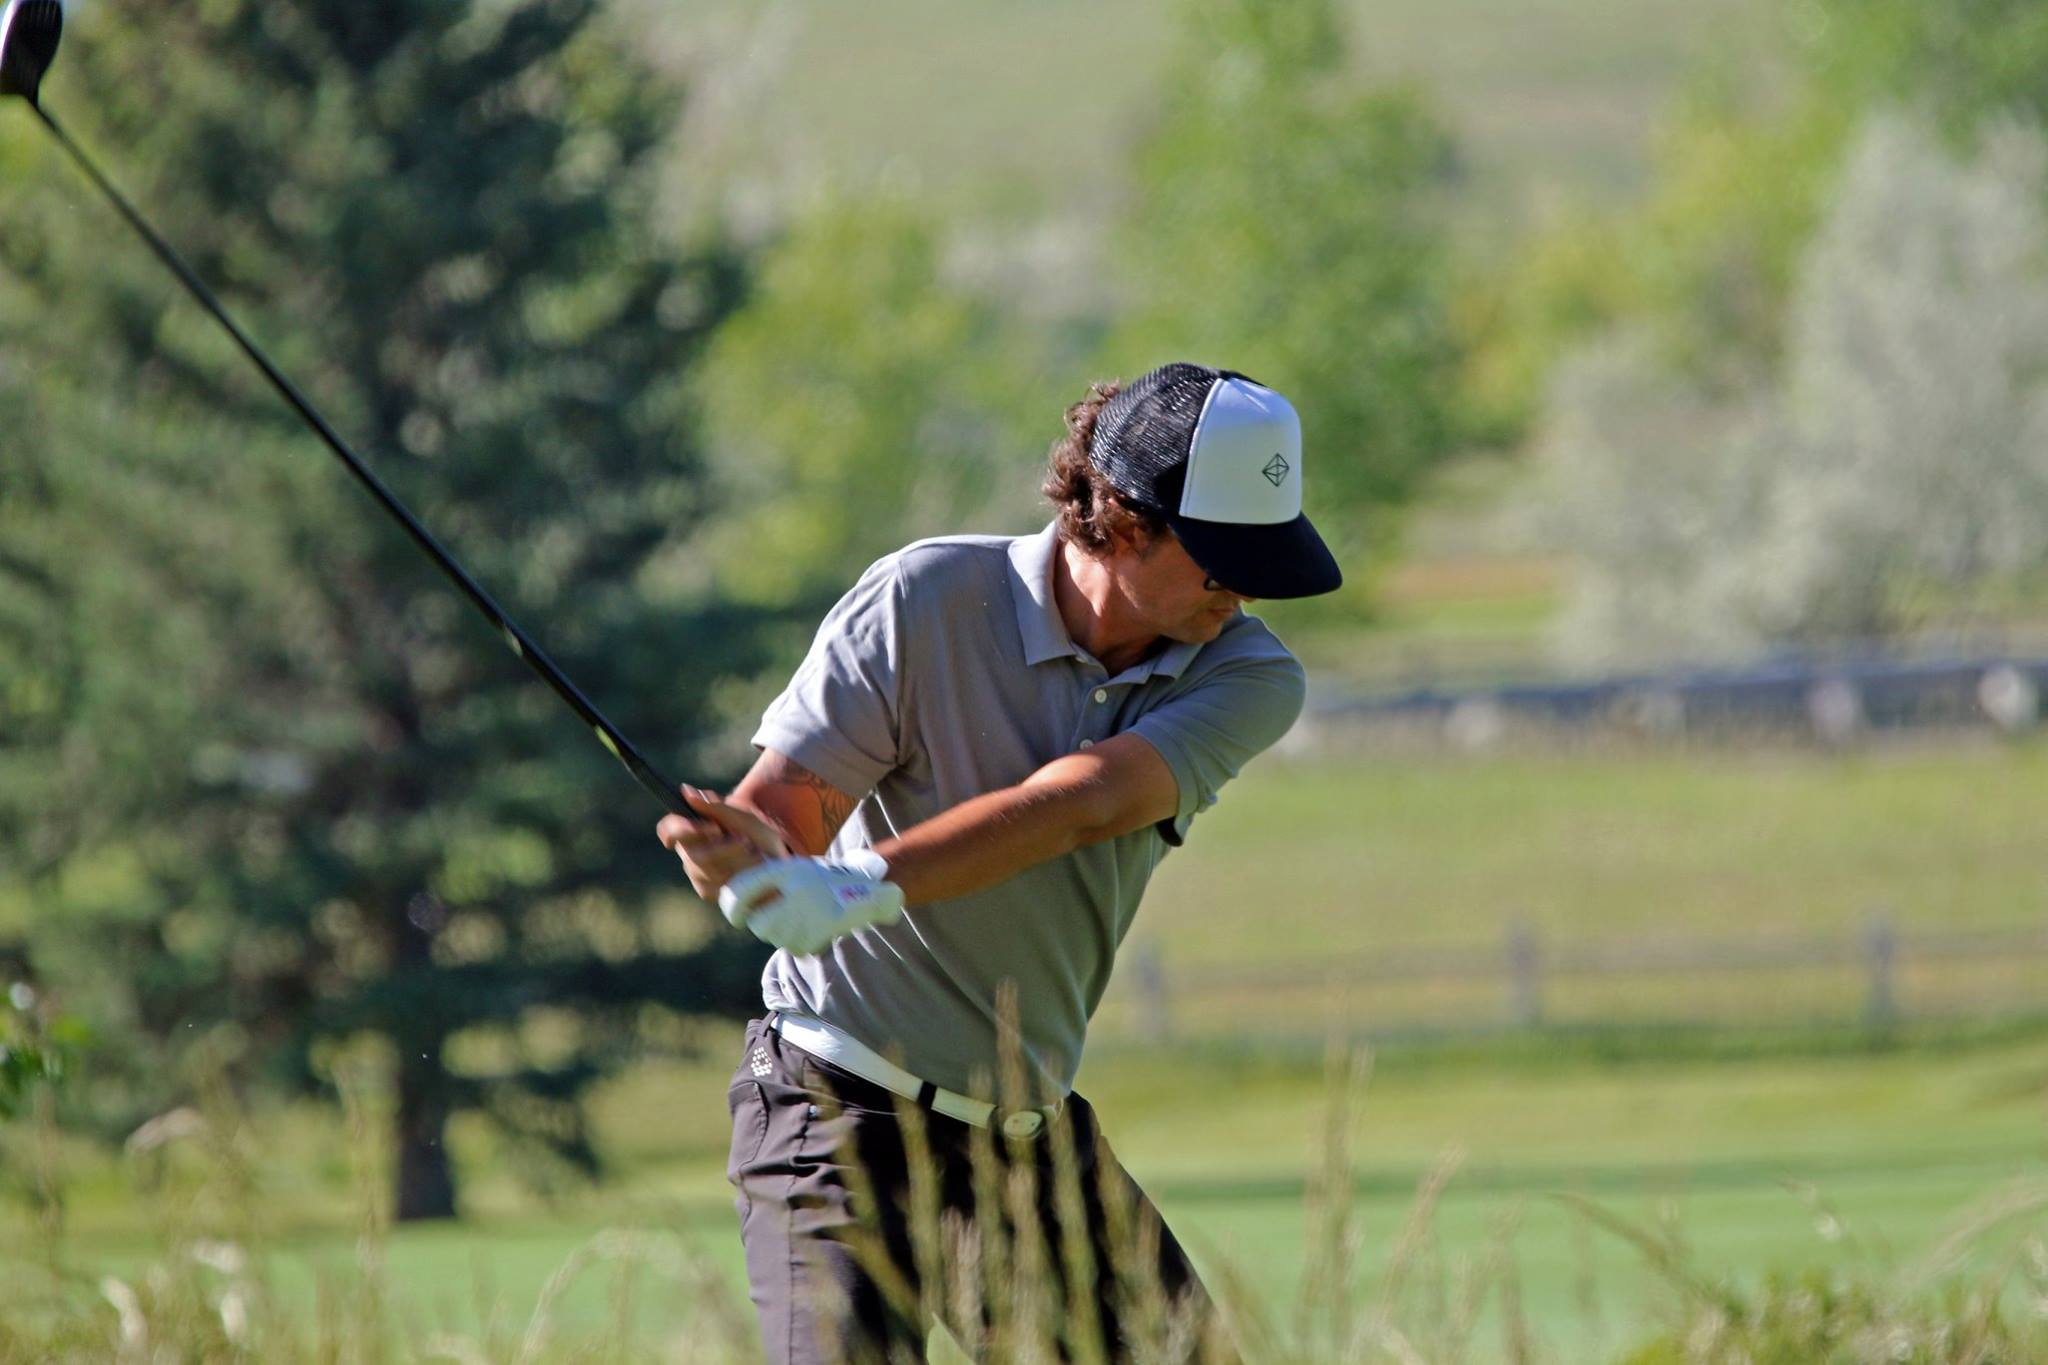 On the links – a favorite pastime.